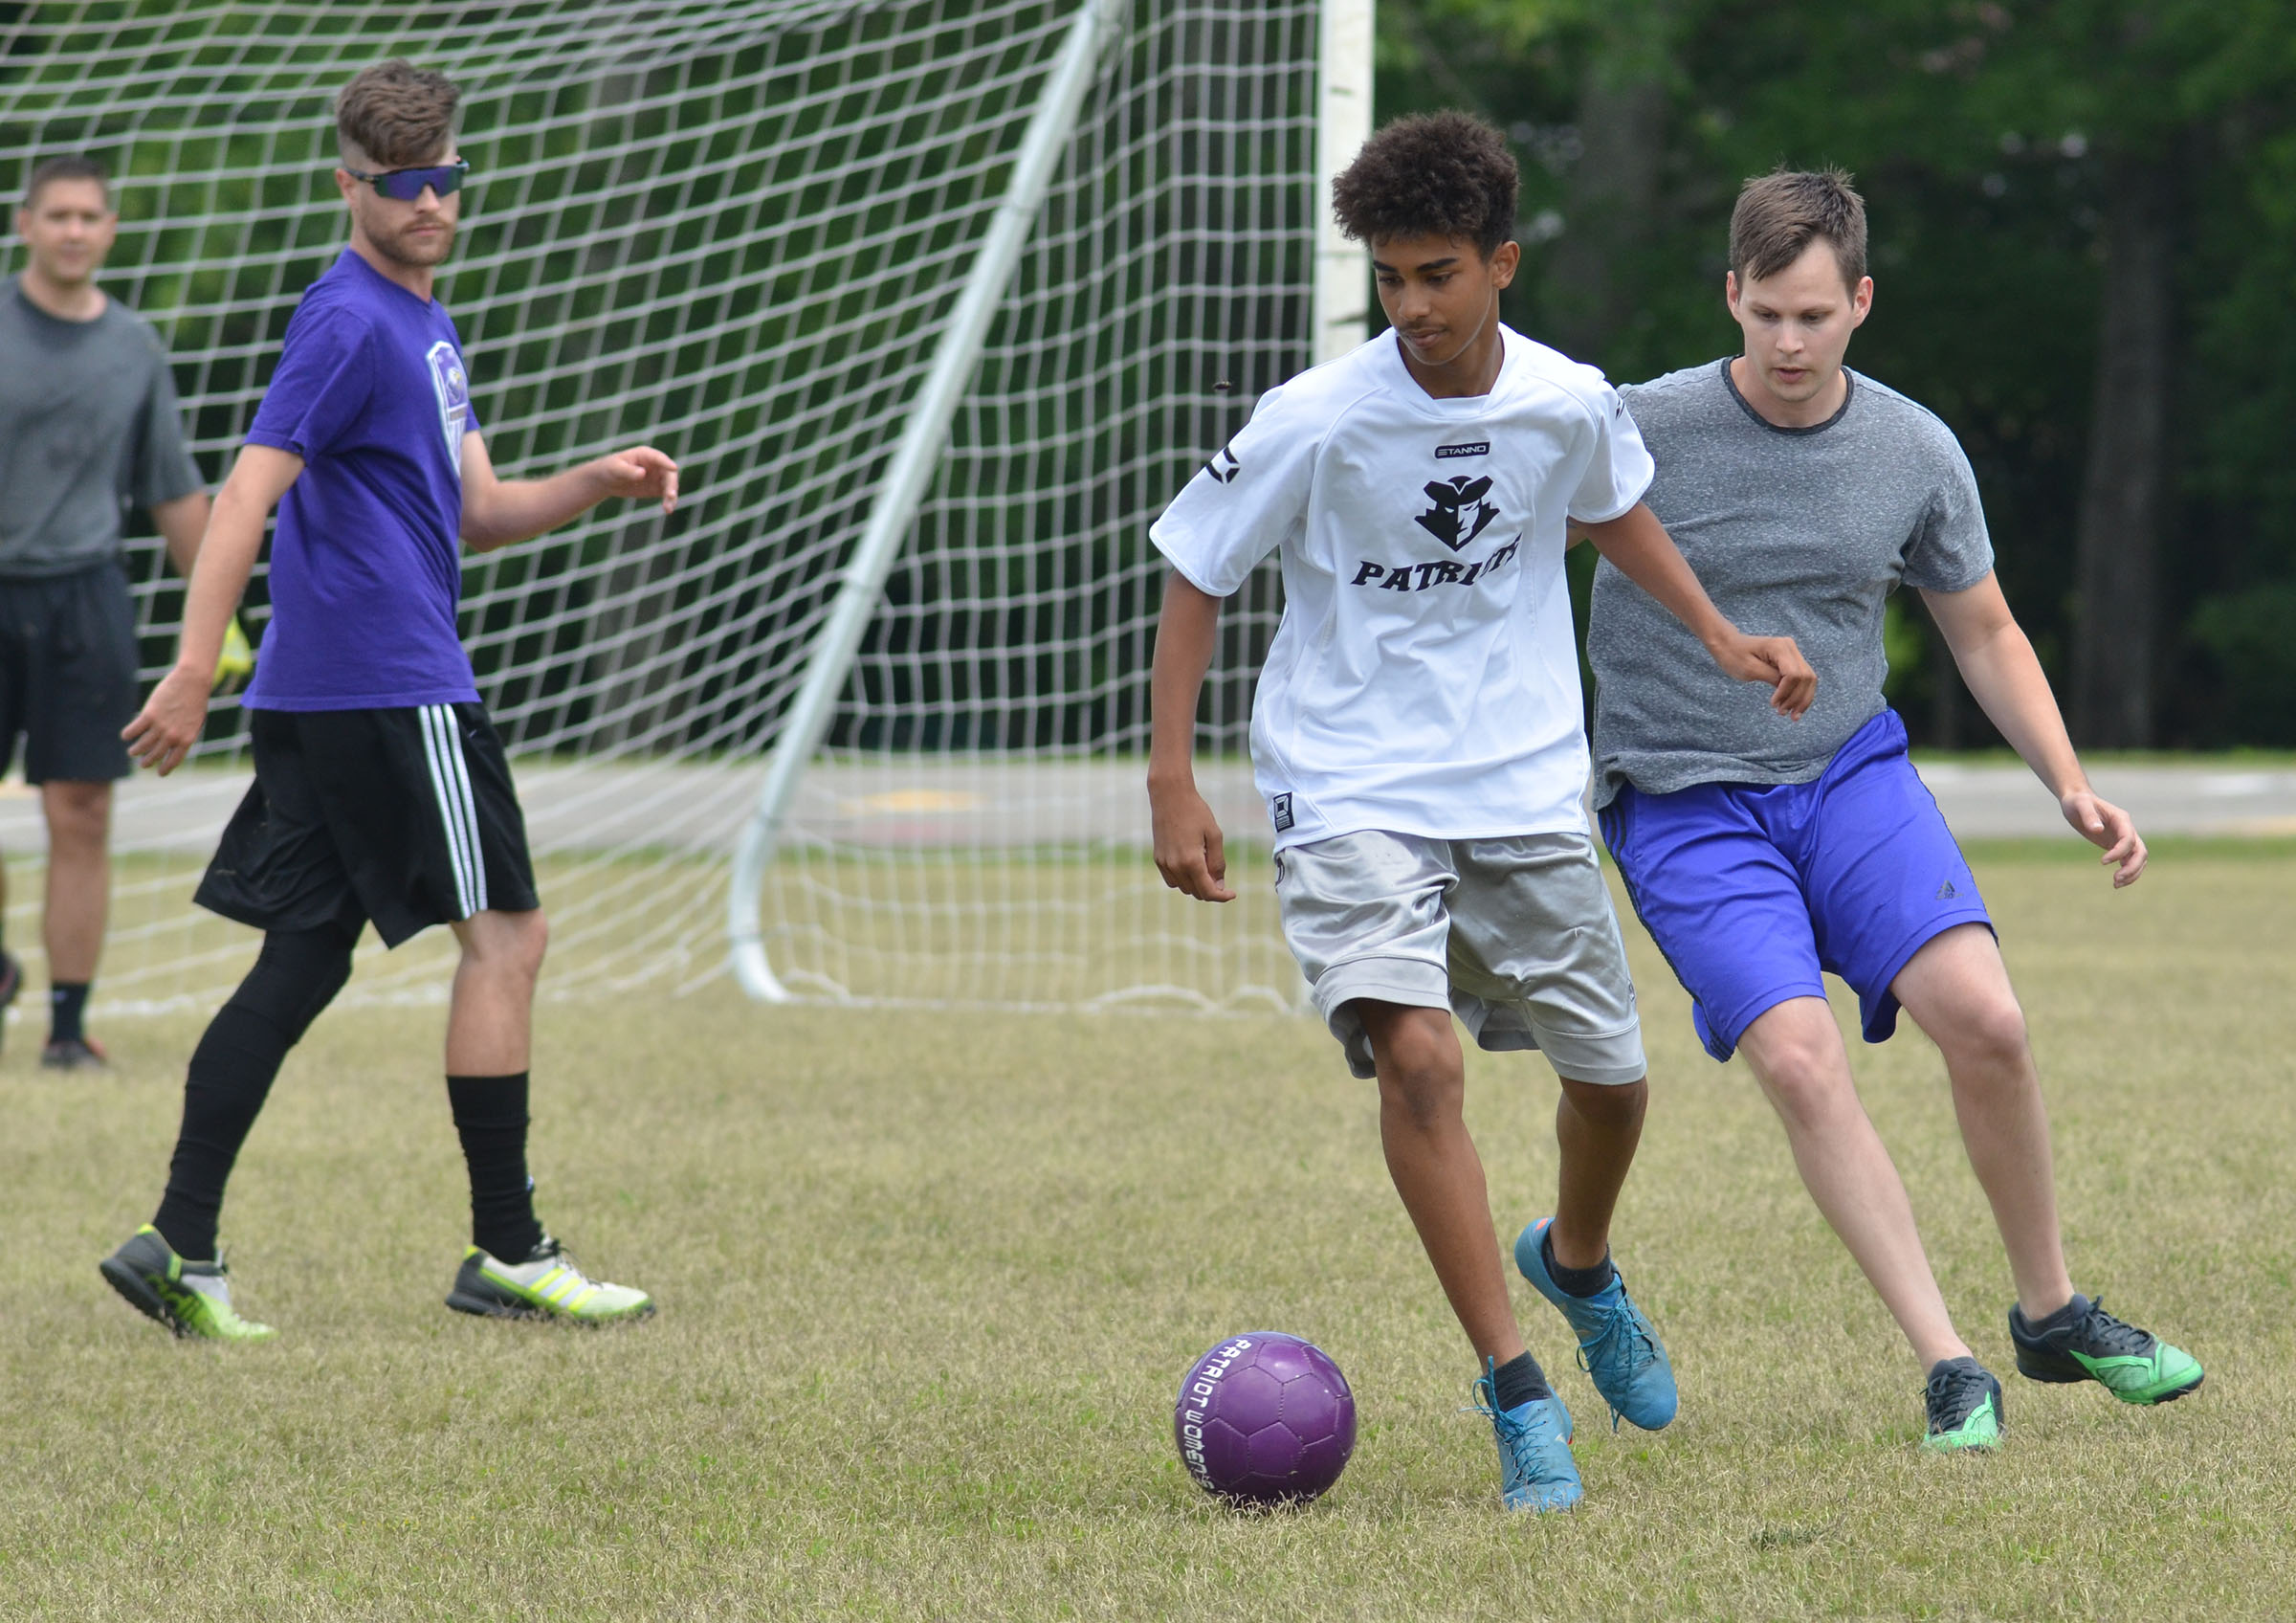 CHS sophomore David Silva kicks the ball, with alumni player Jeff Muncie on his heels.